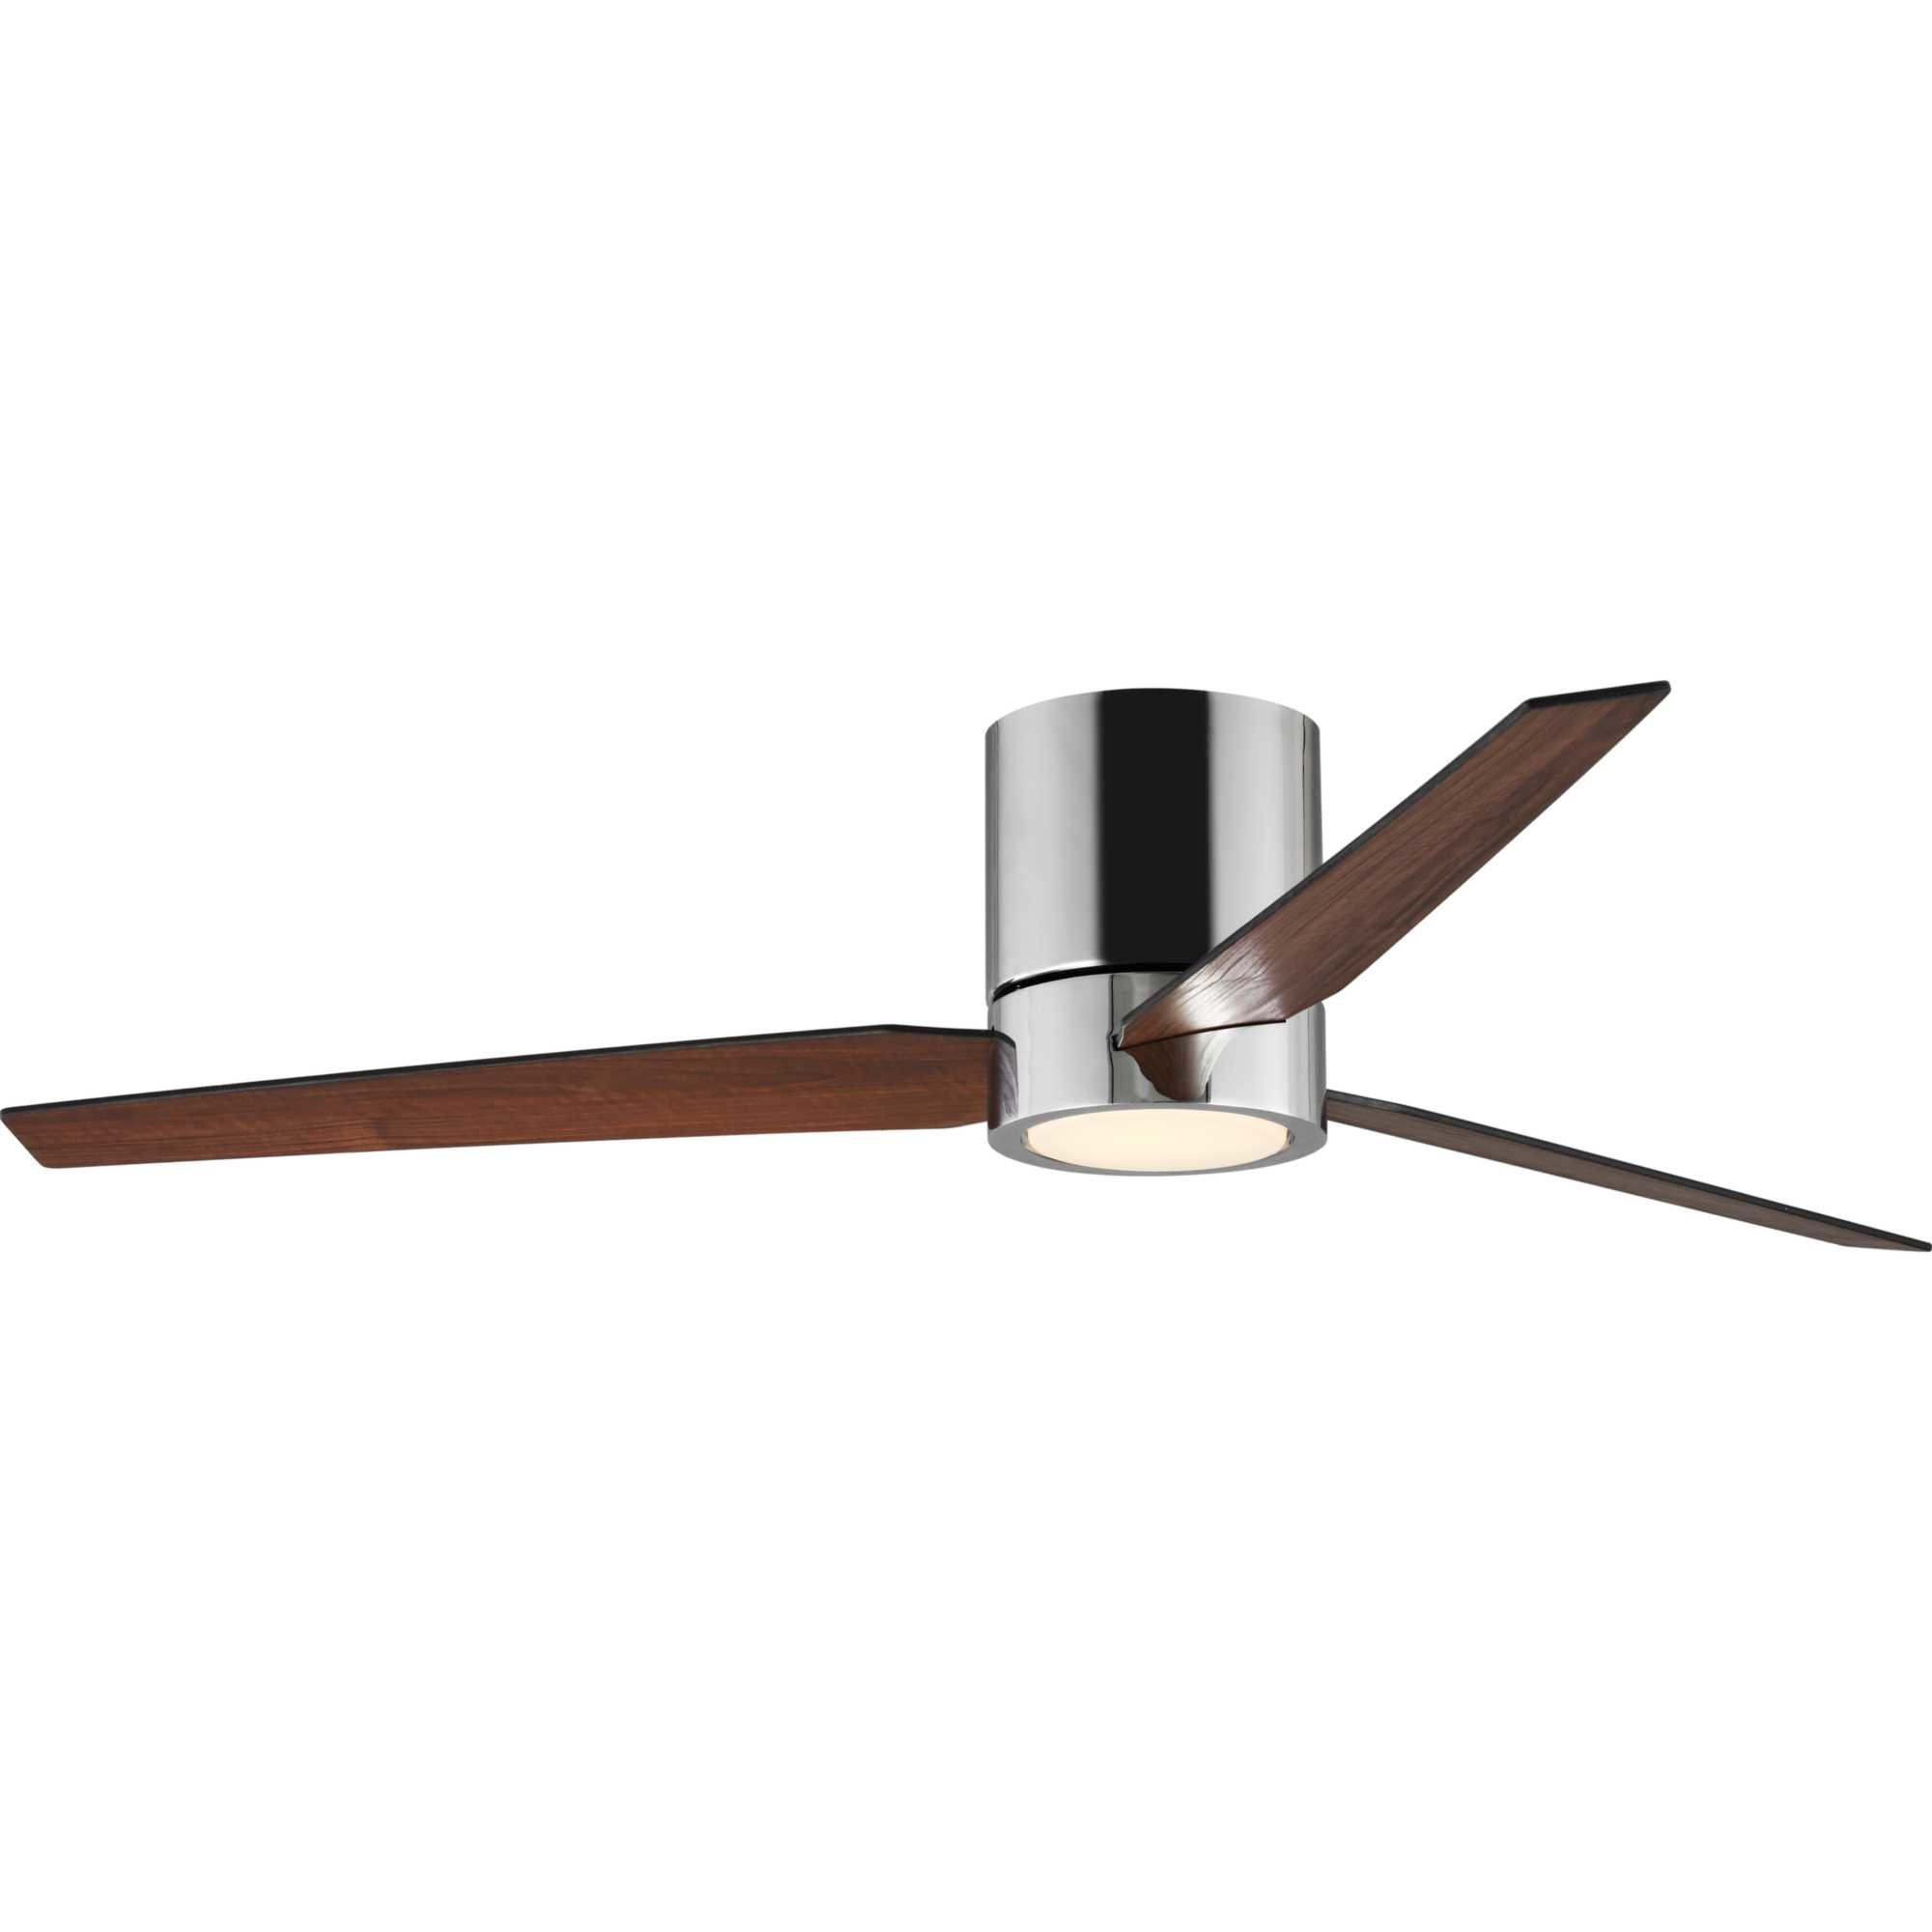 "Recent Windemere 5 Blade Ceiling Fans With Remote Pertaining To 56"" Tucker Hugger 3 Blade Led Ceiling Fan With Remote, Light Kit Included (View 10 of 20)"